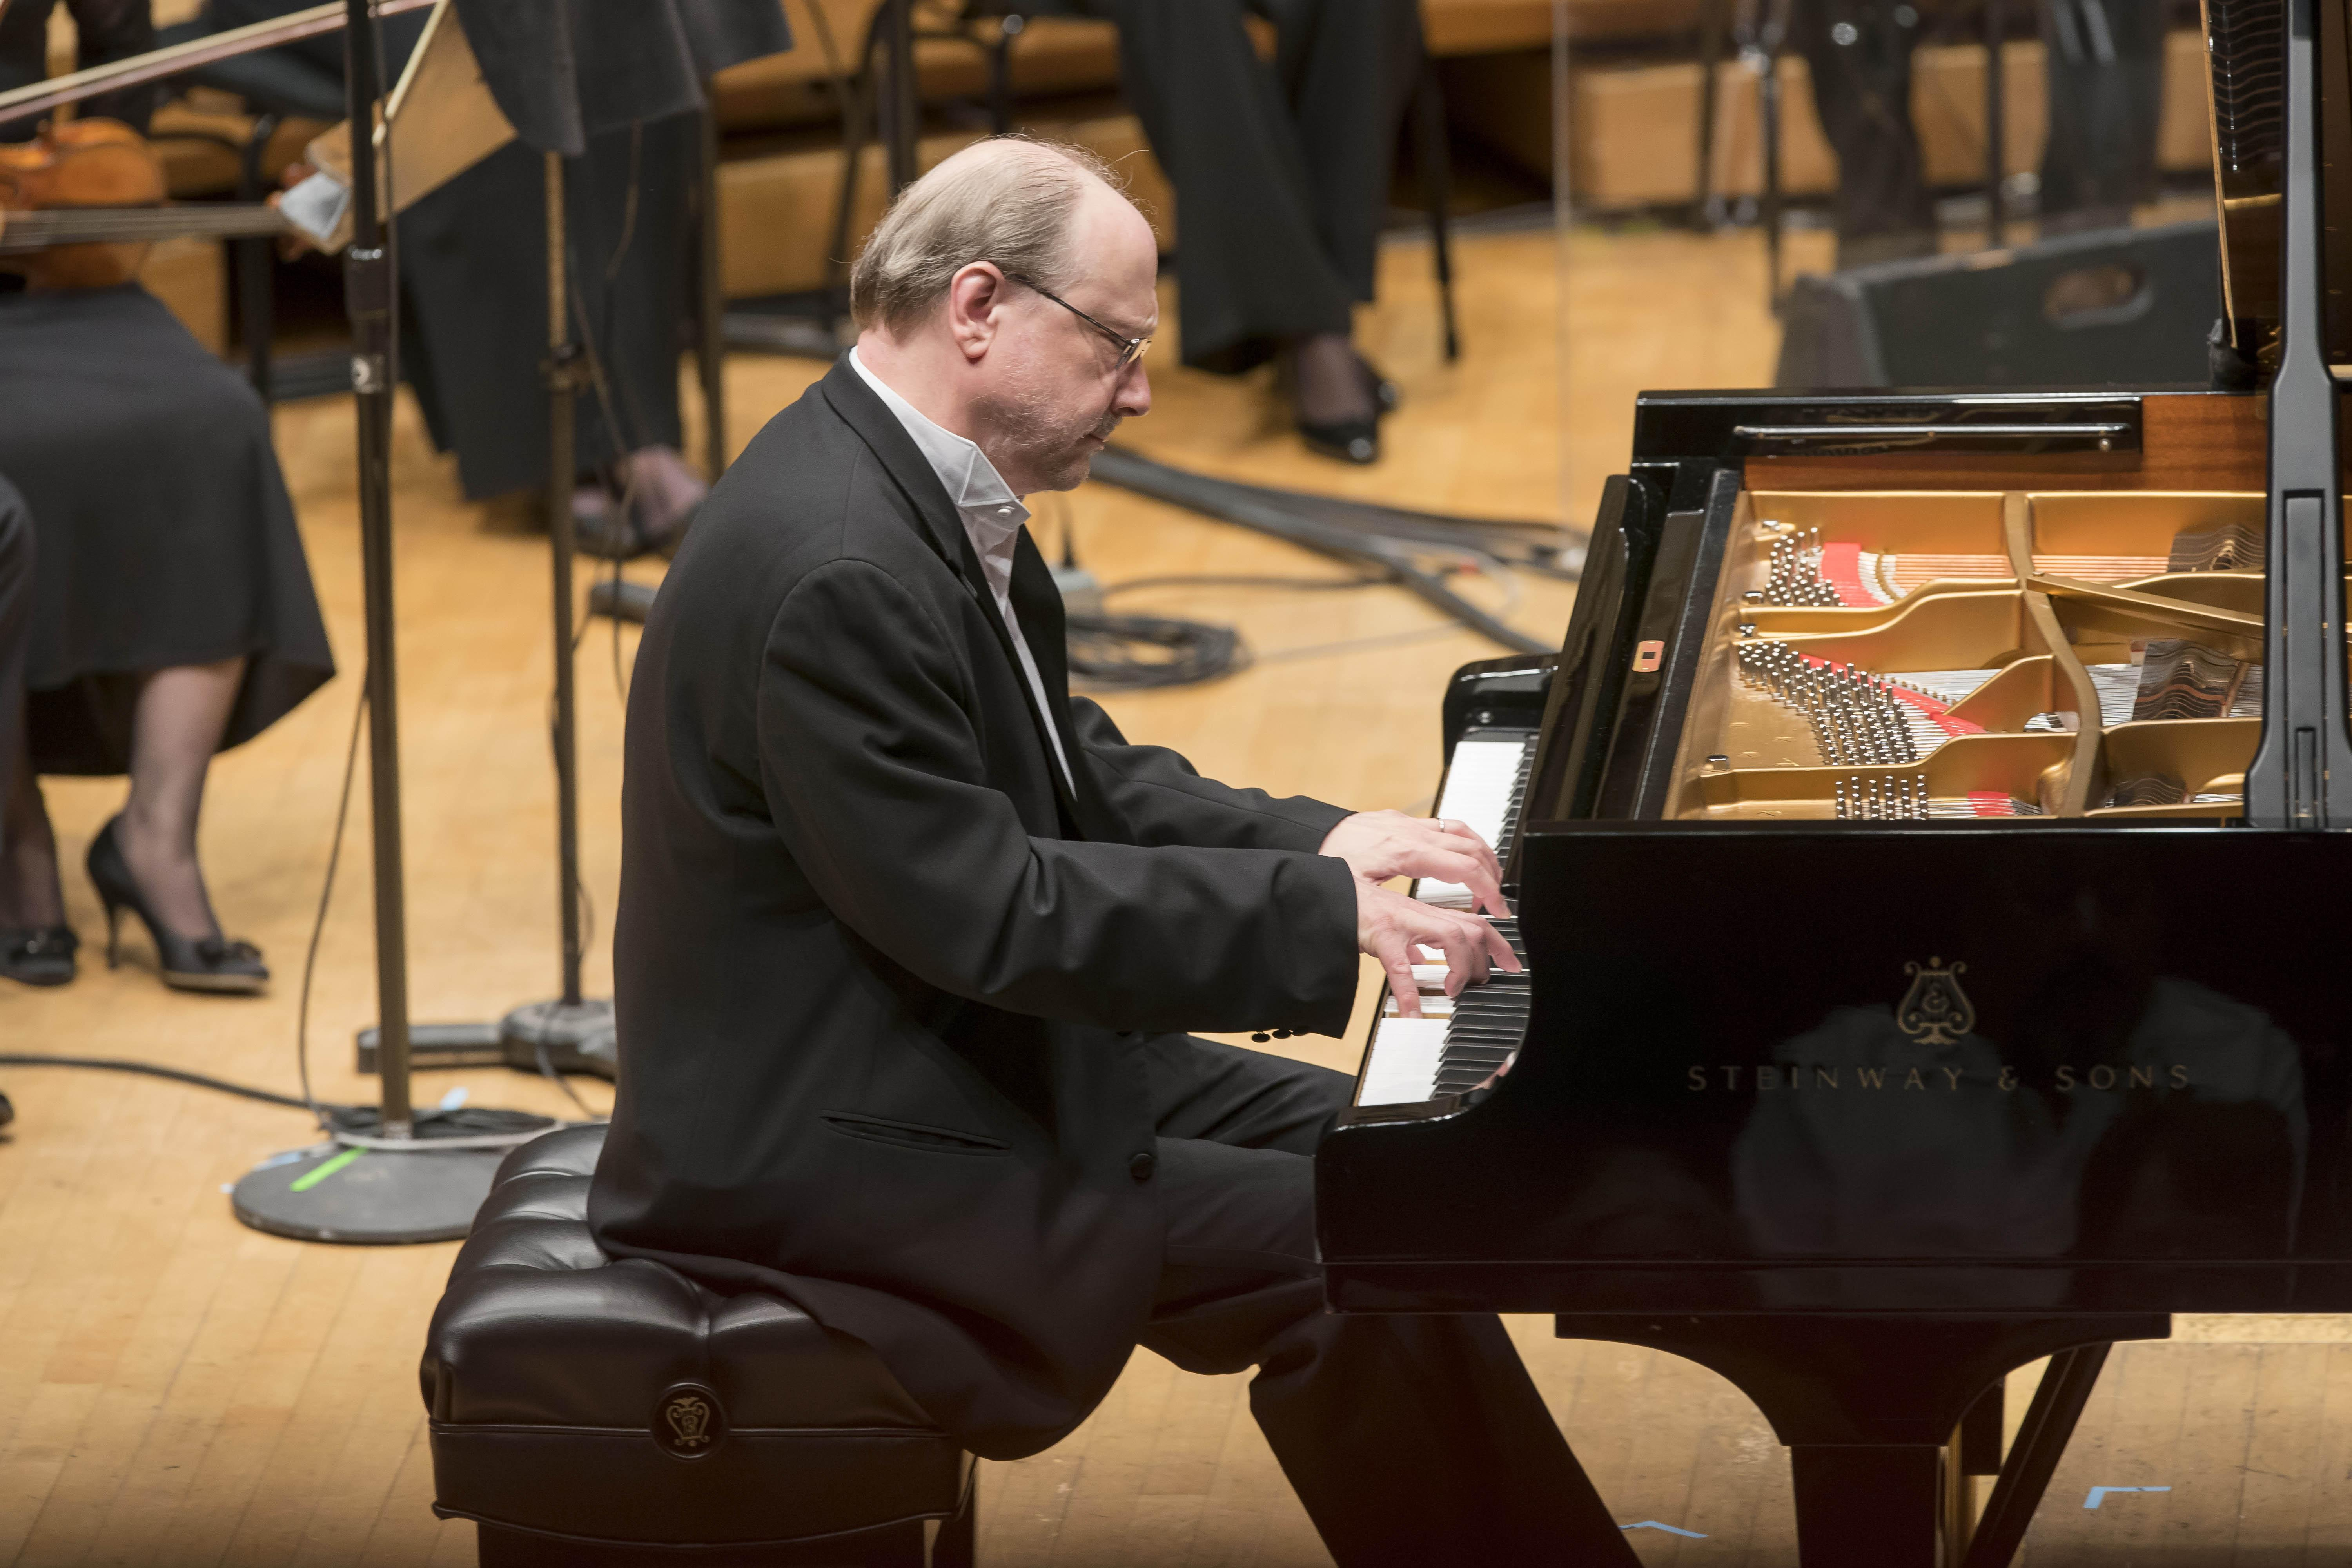 Marc-André Hamelin performed Gershwin's Rhapsody in Blue with the Chicago Symphony Orchestra for the CSOA's 29th annual Corporate Night Concert on June 11, 2018. (Credit: Todd Rosenberg)